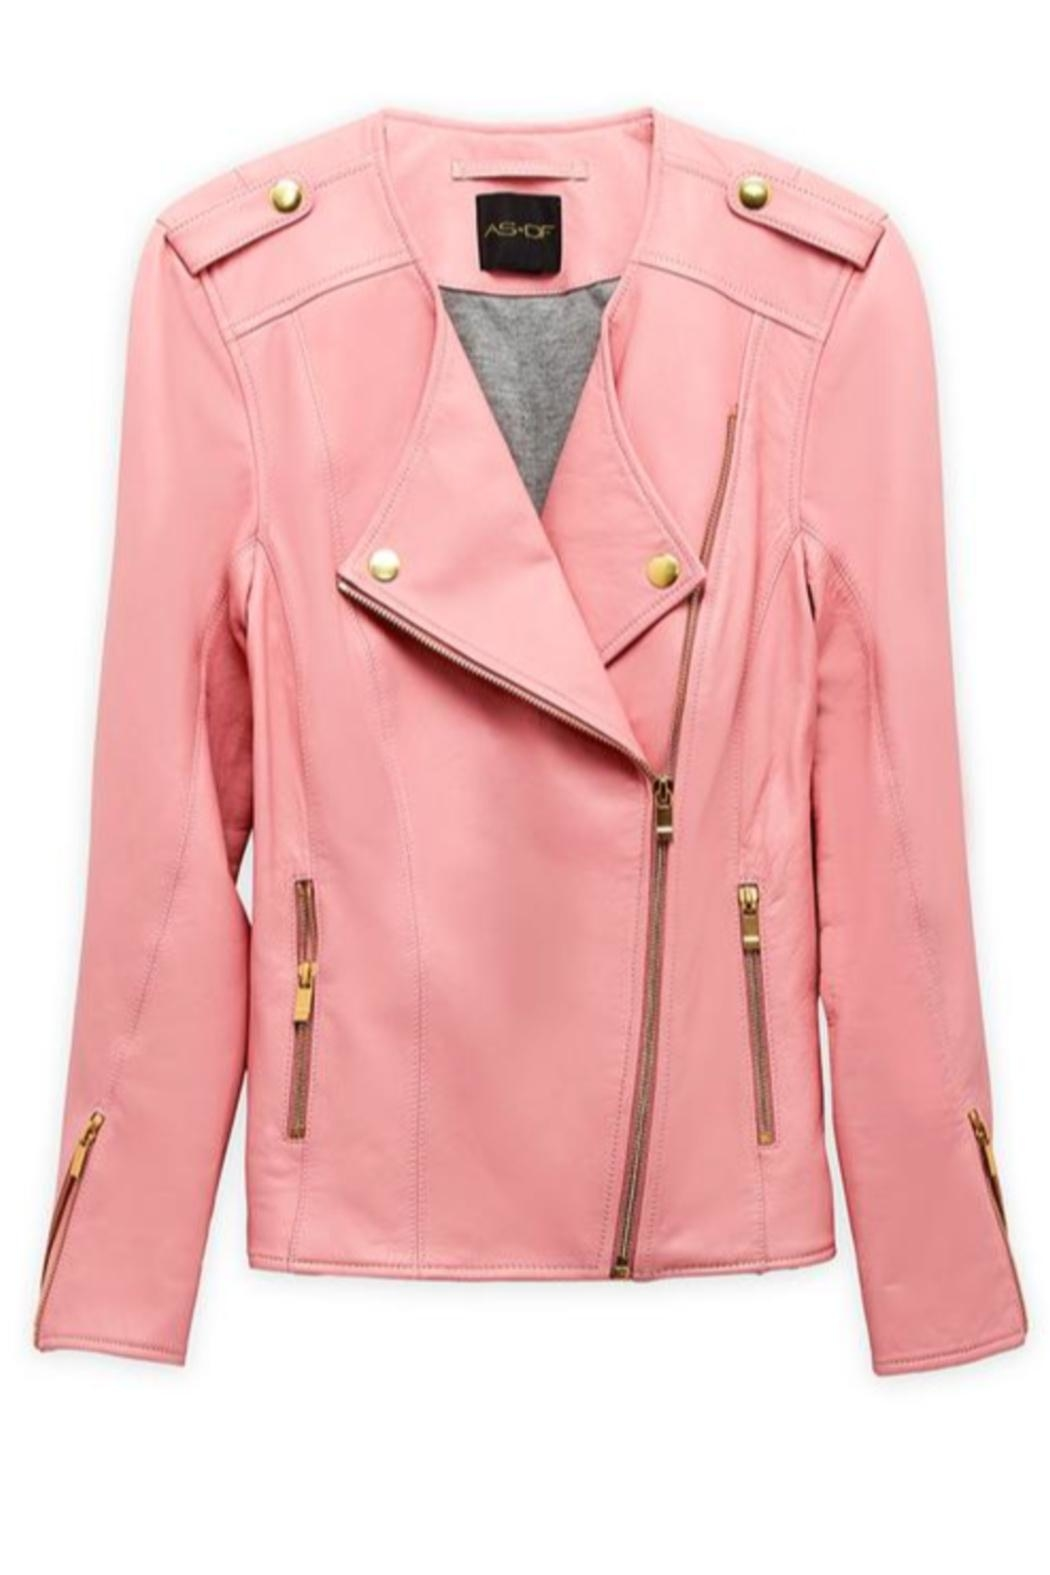 AS by DF La-Dolce-Vita Leather Jacket - Side Cropped Image